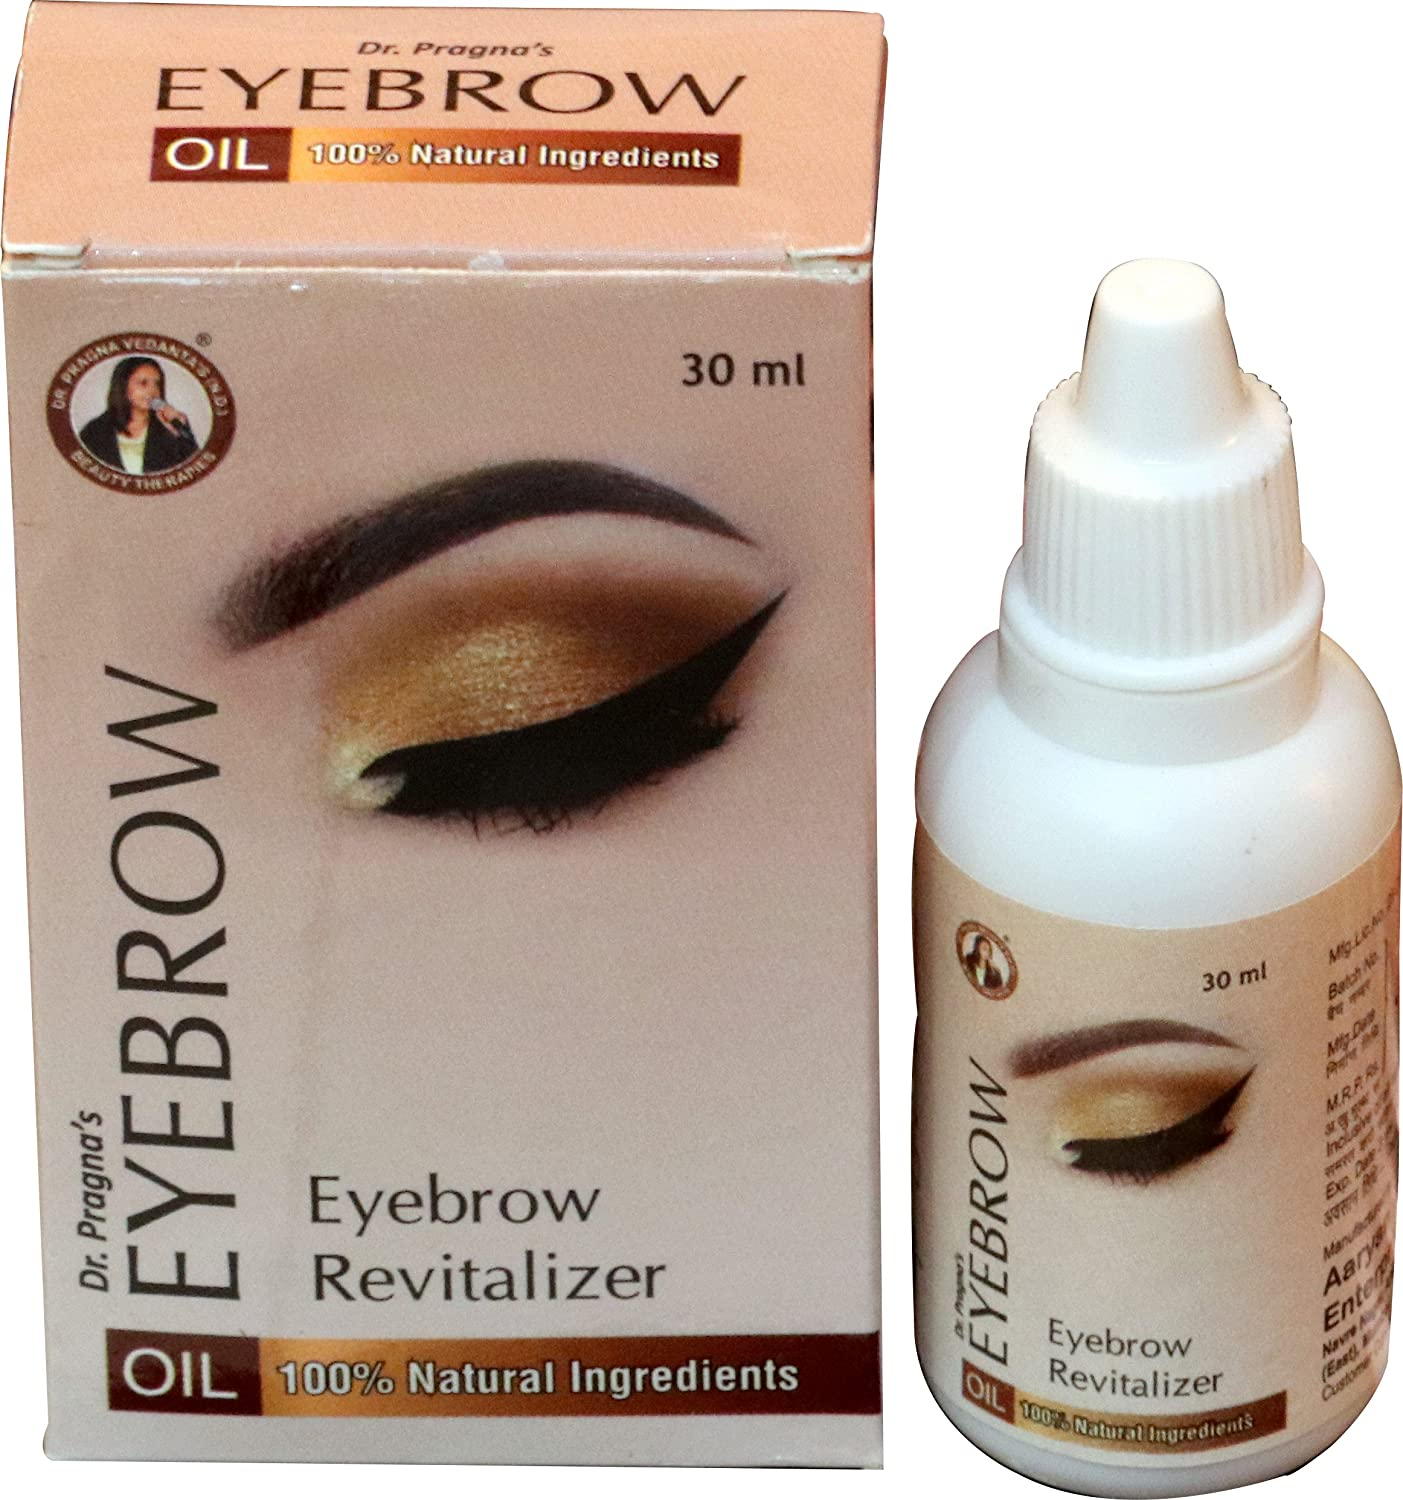 Buy Dr Pragna Vedants Eyebrow Oil 30ml Online At Low Prices In